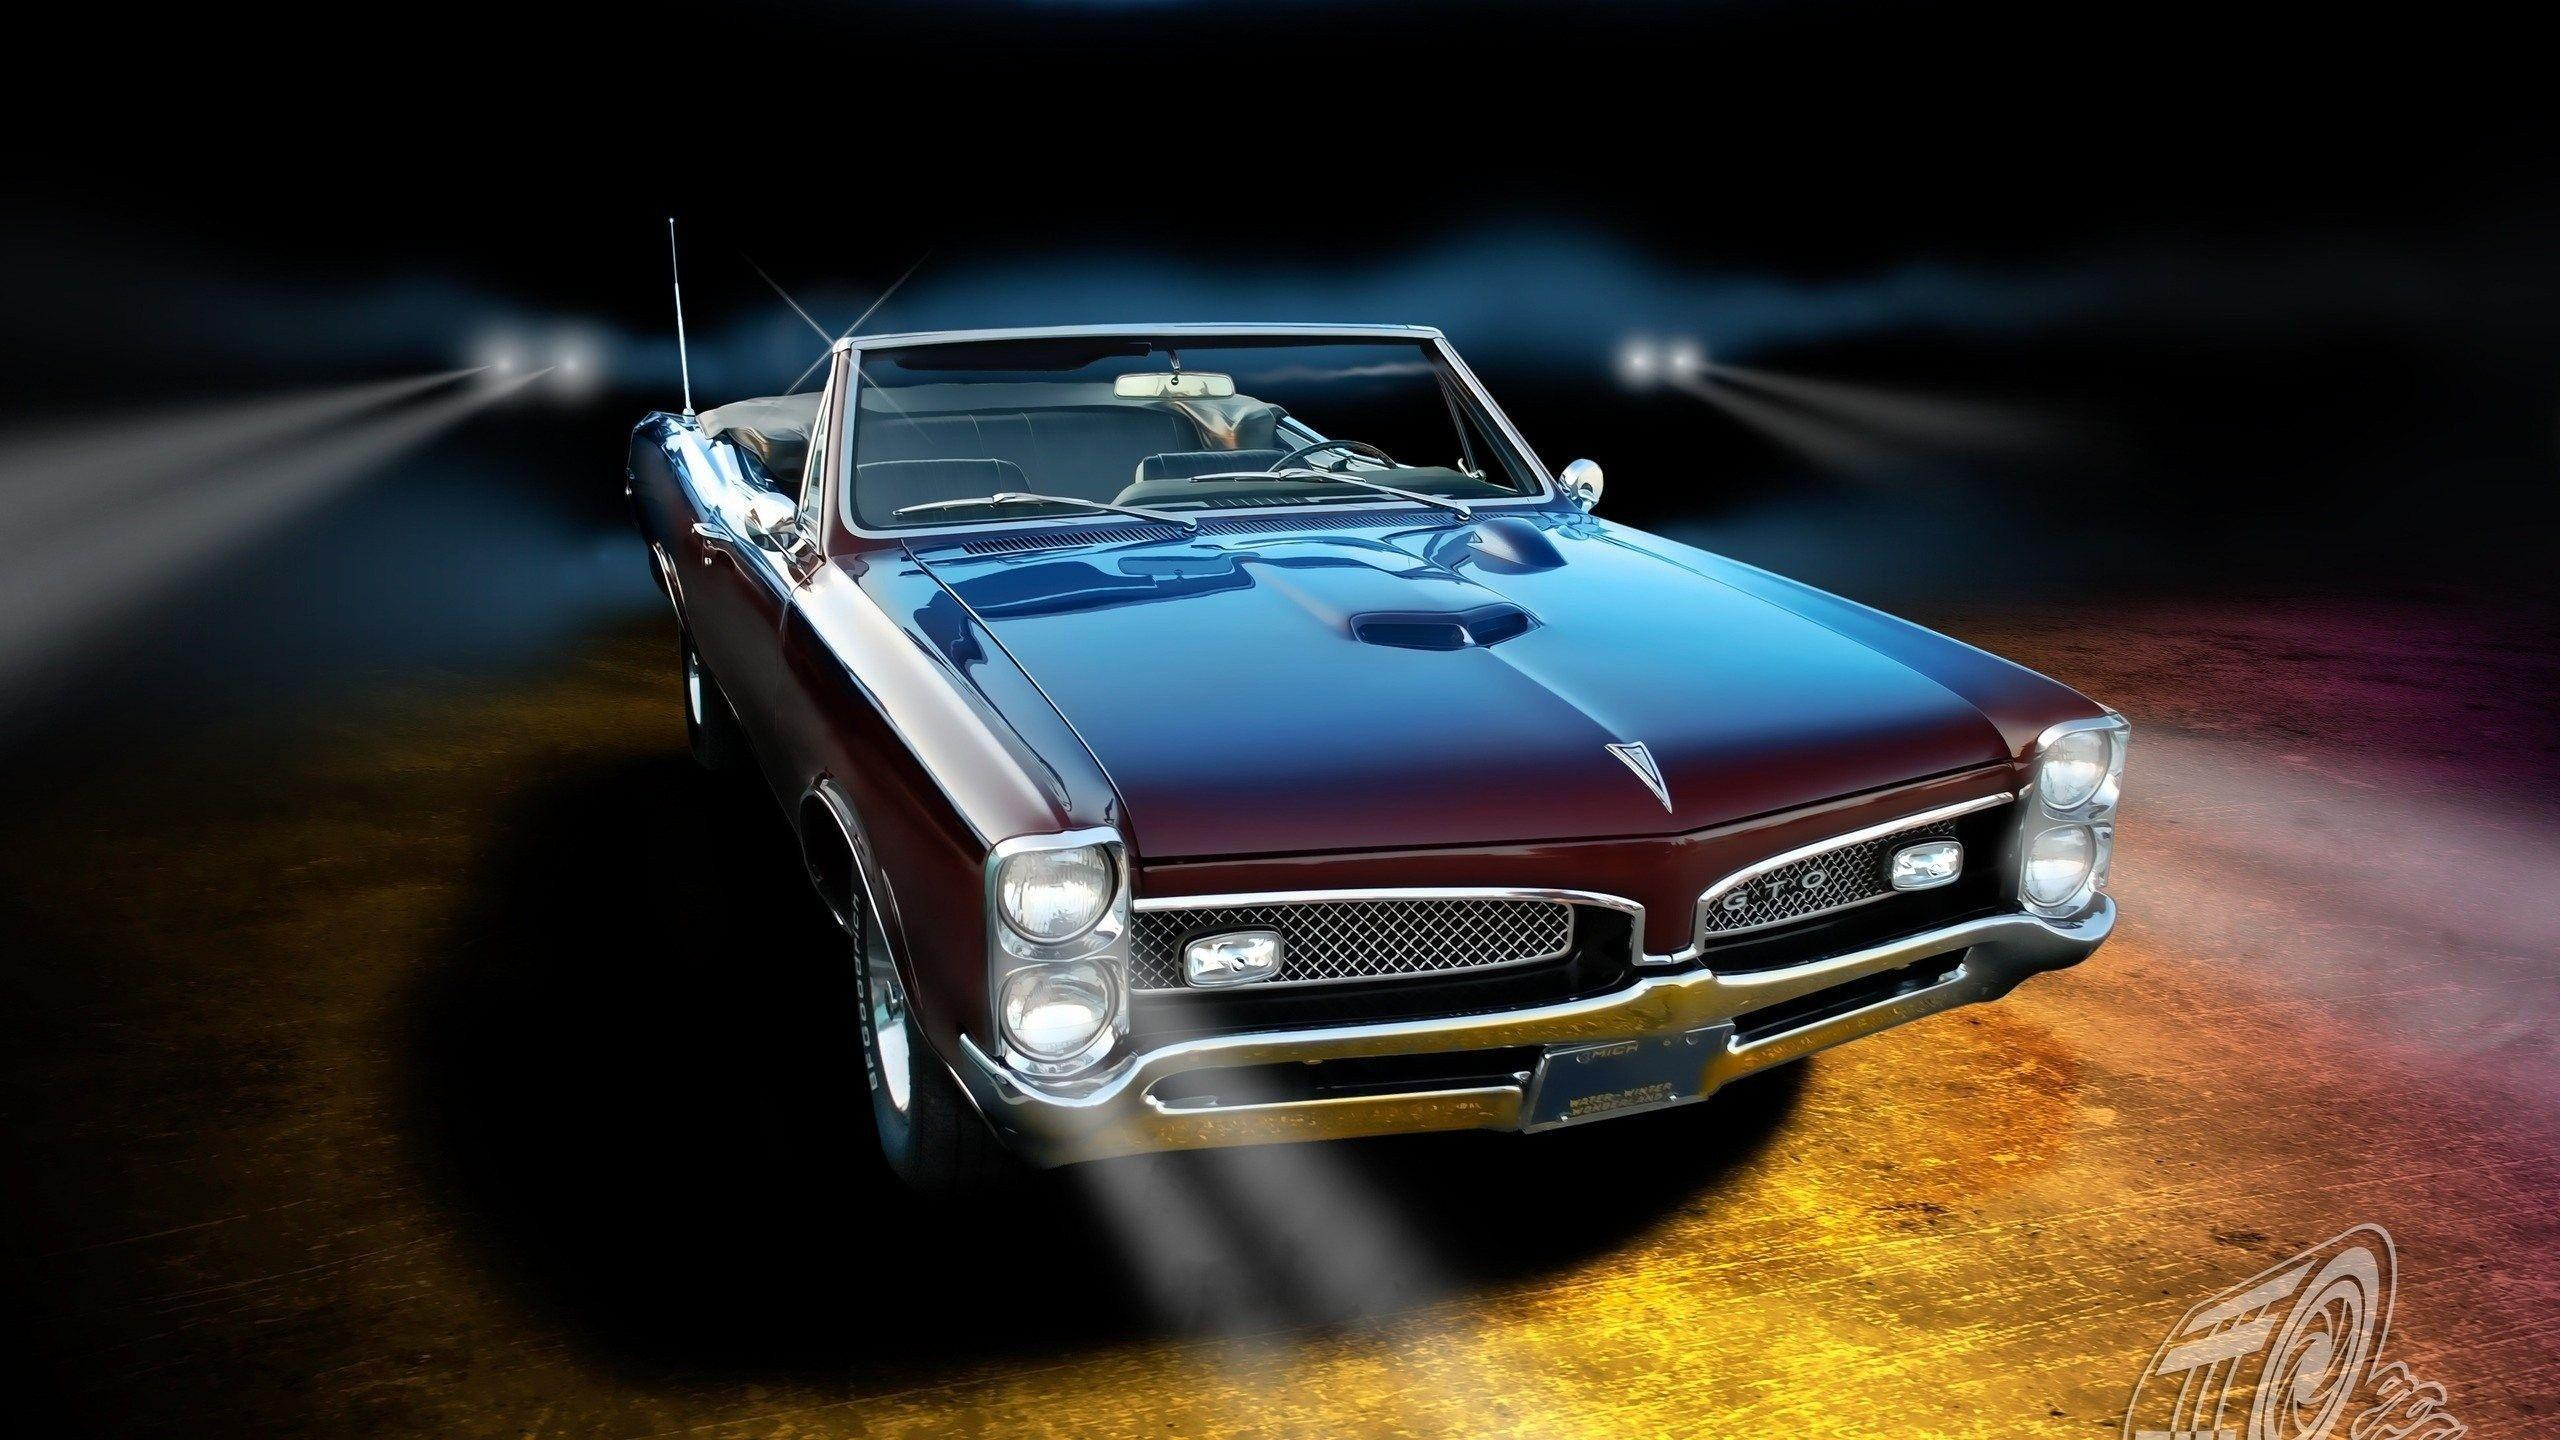 Classic Muscle Car Wallpapers 2560x1440